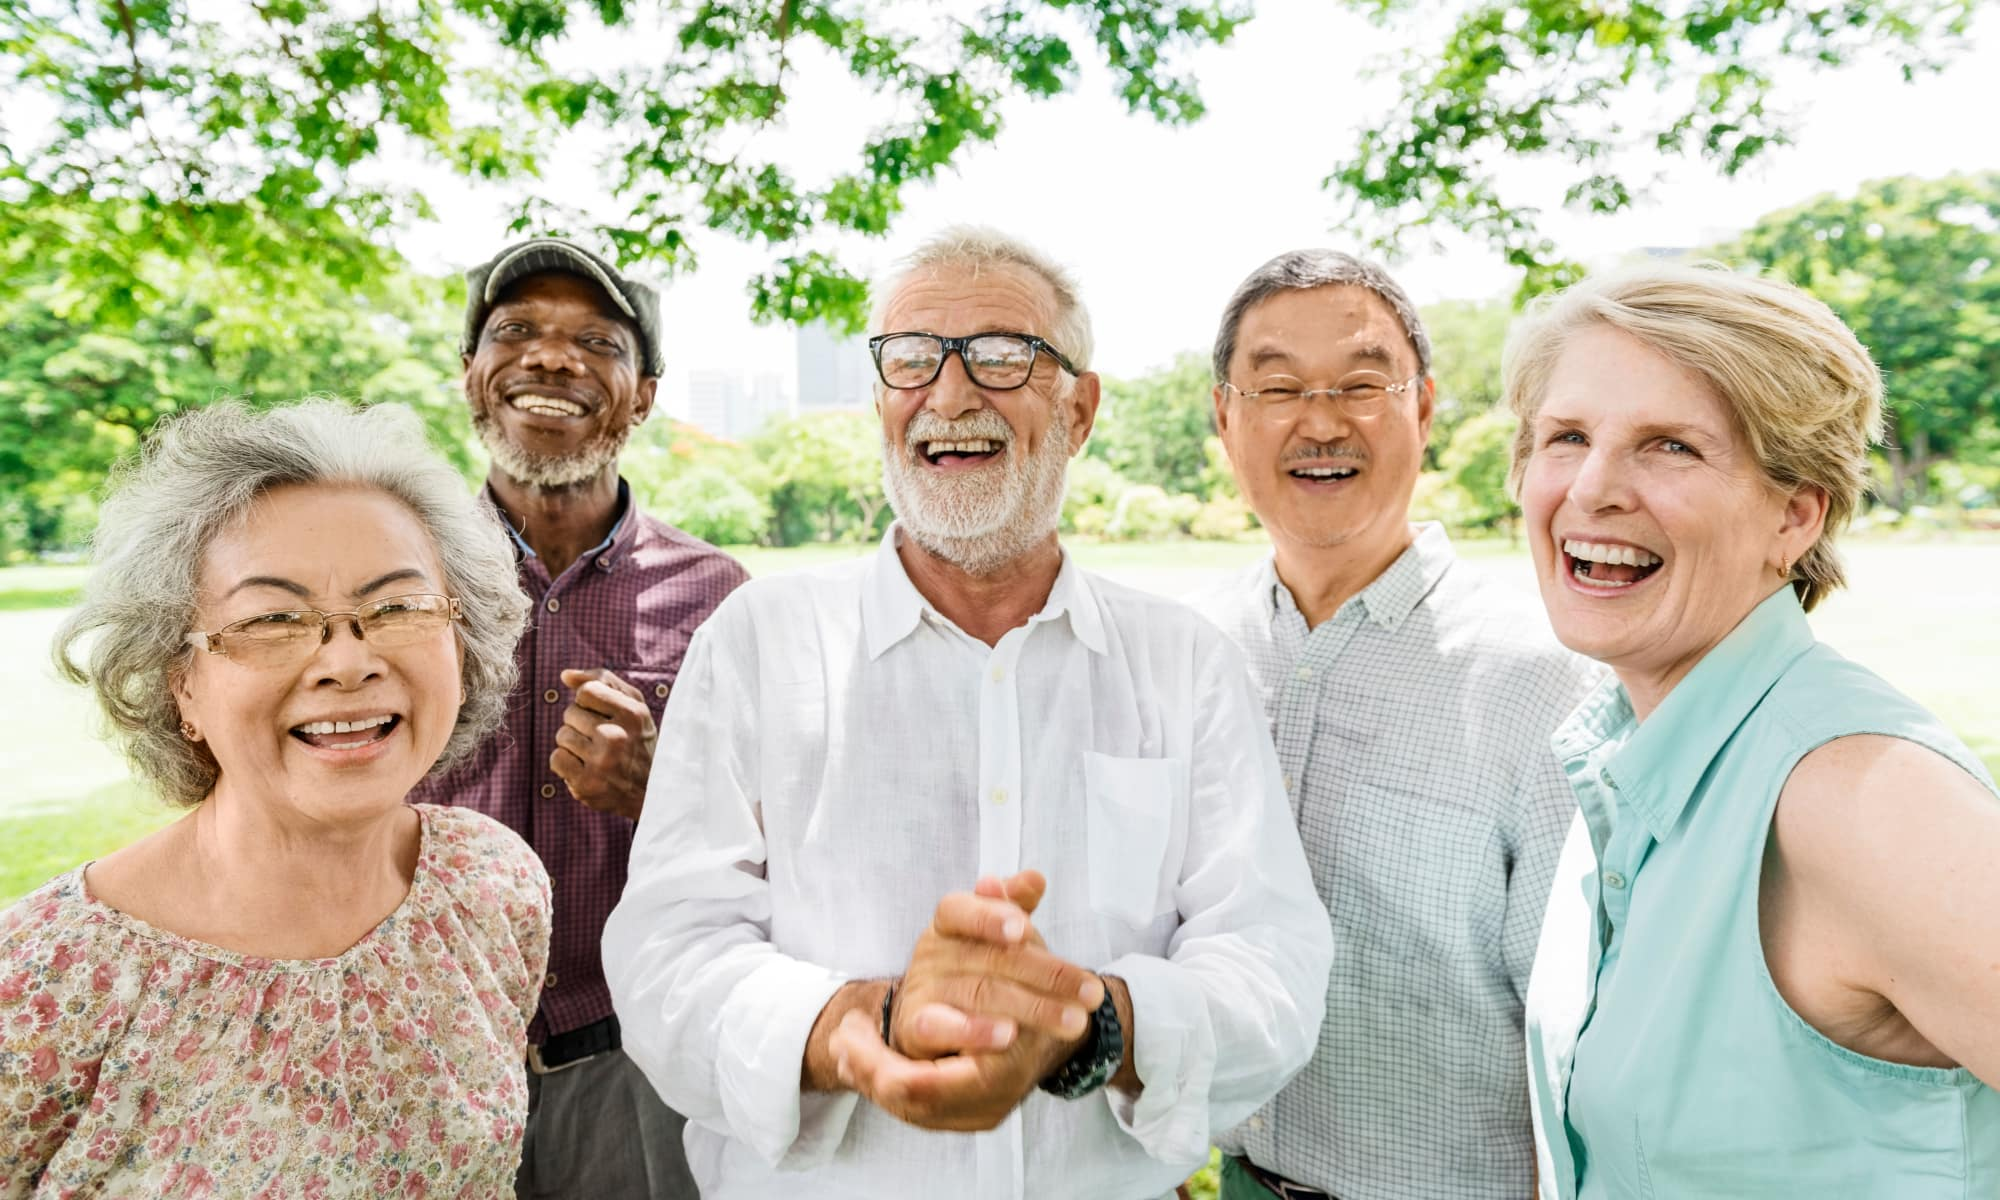 Residents of Seasons Living posing for a photo